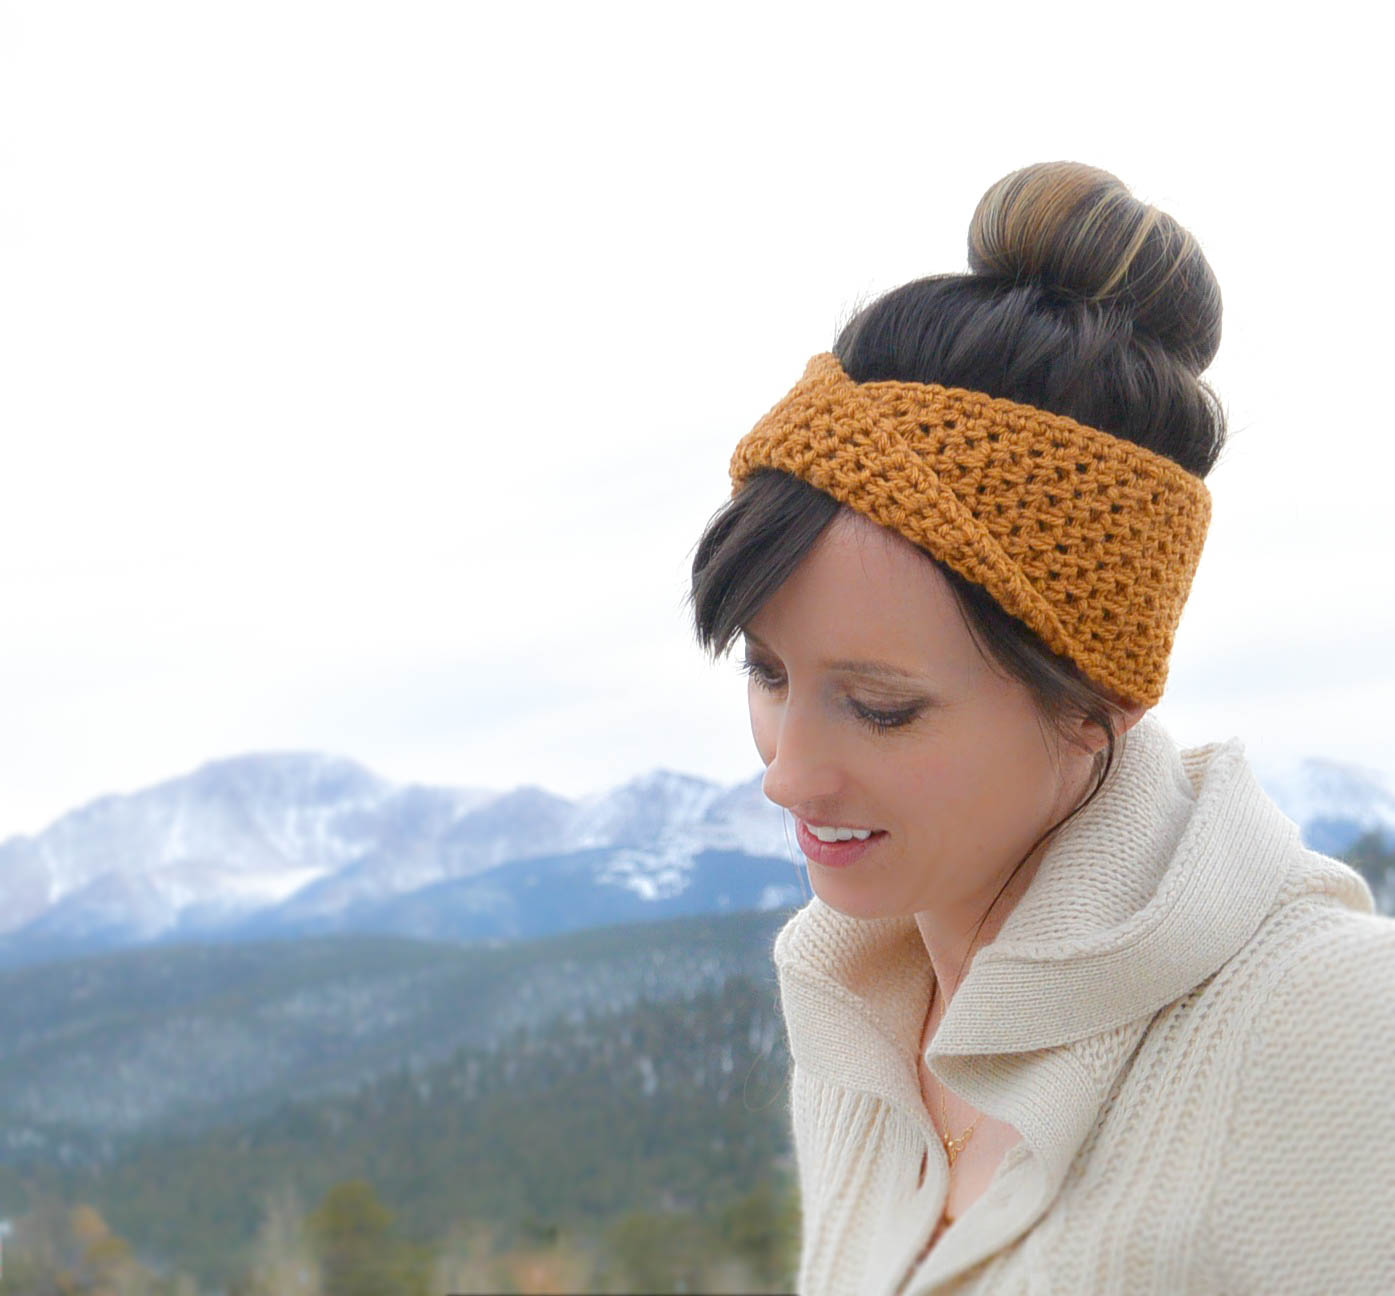 Crocheting A Headband : Golden Fave Twist Headband - Free Crochet Pattern - Mama In A Stitch